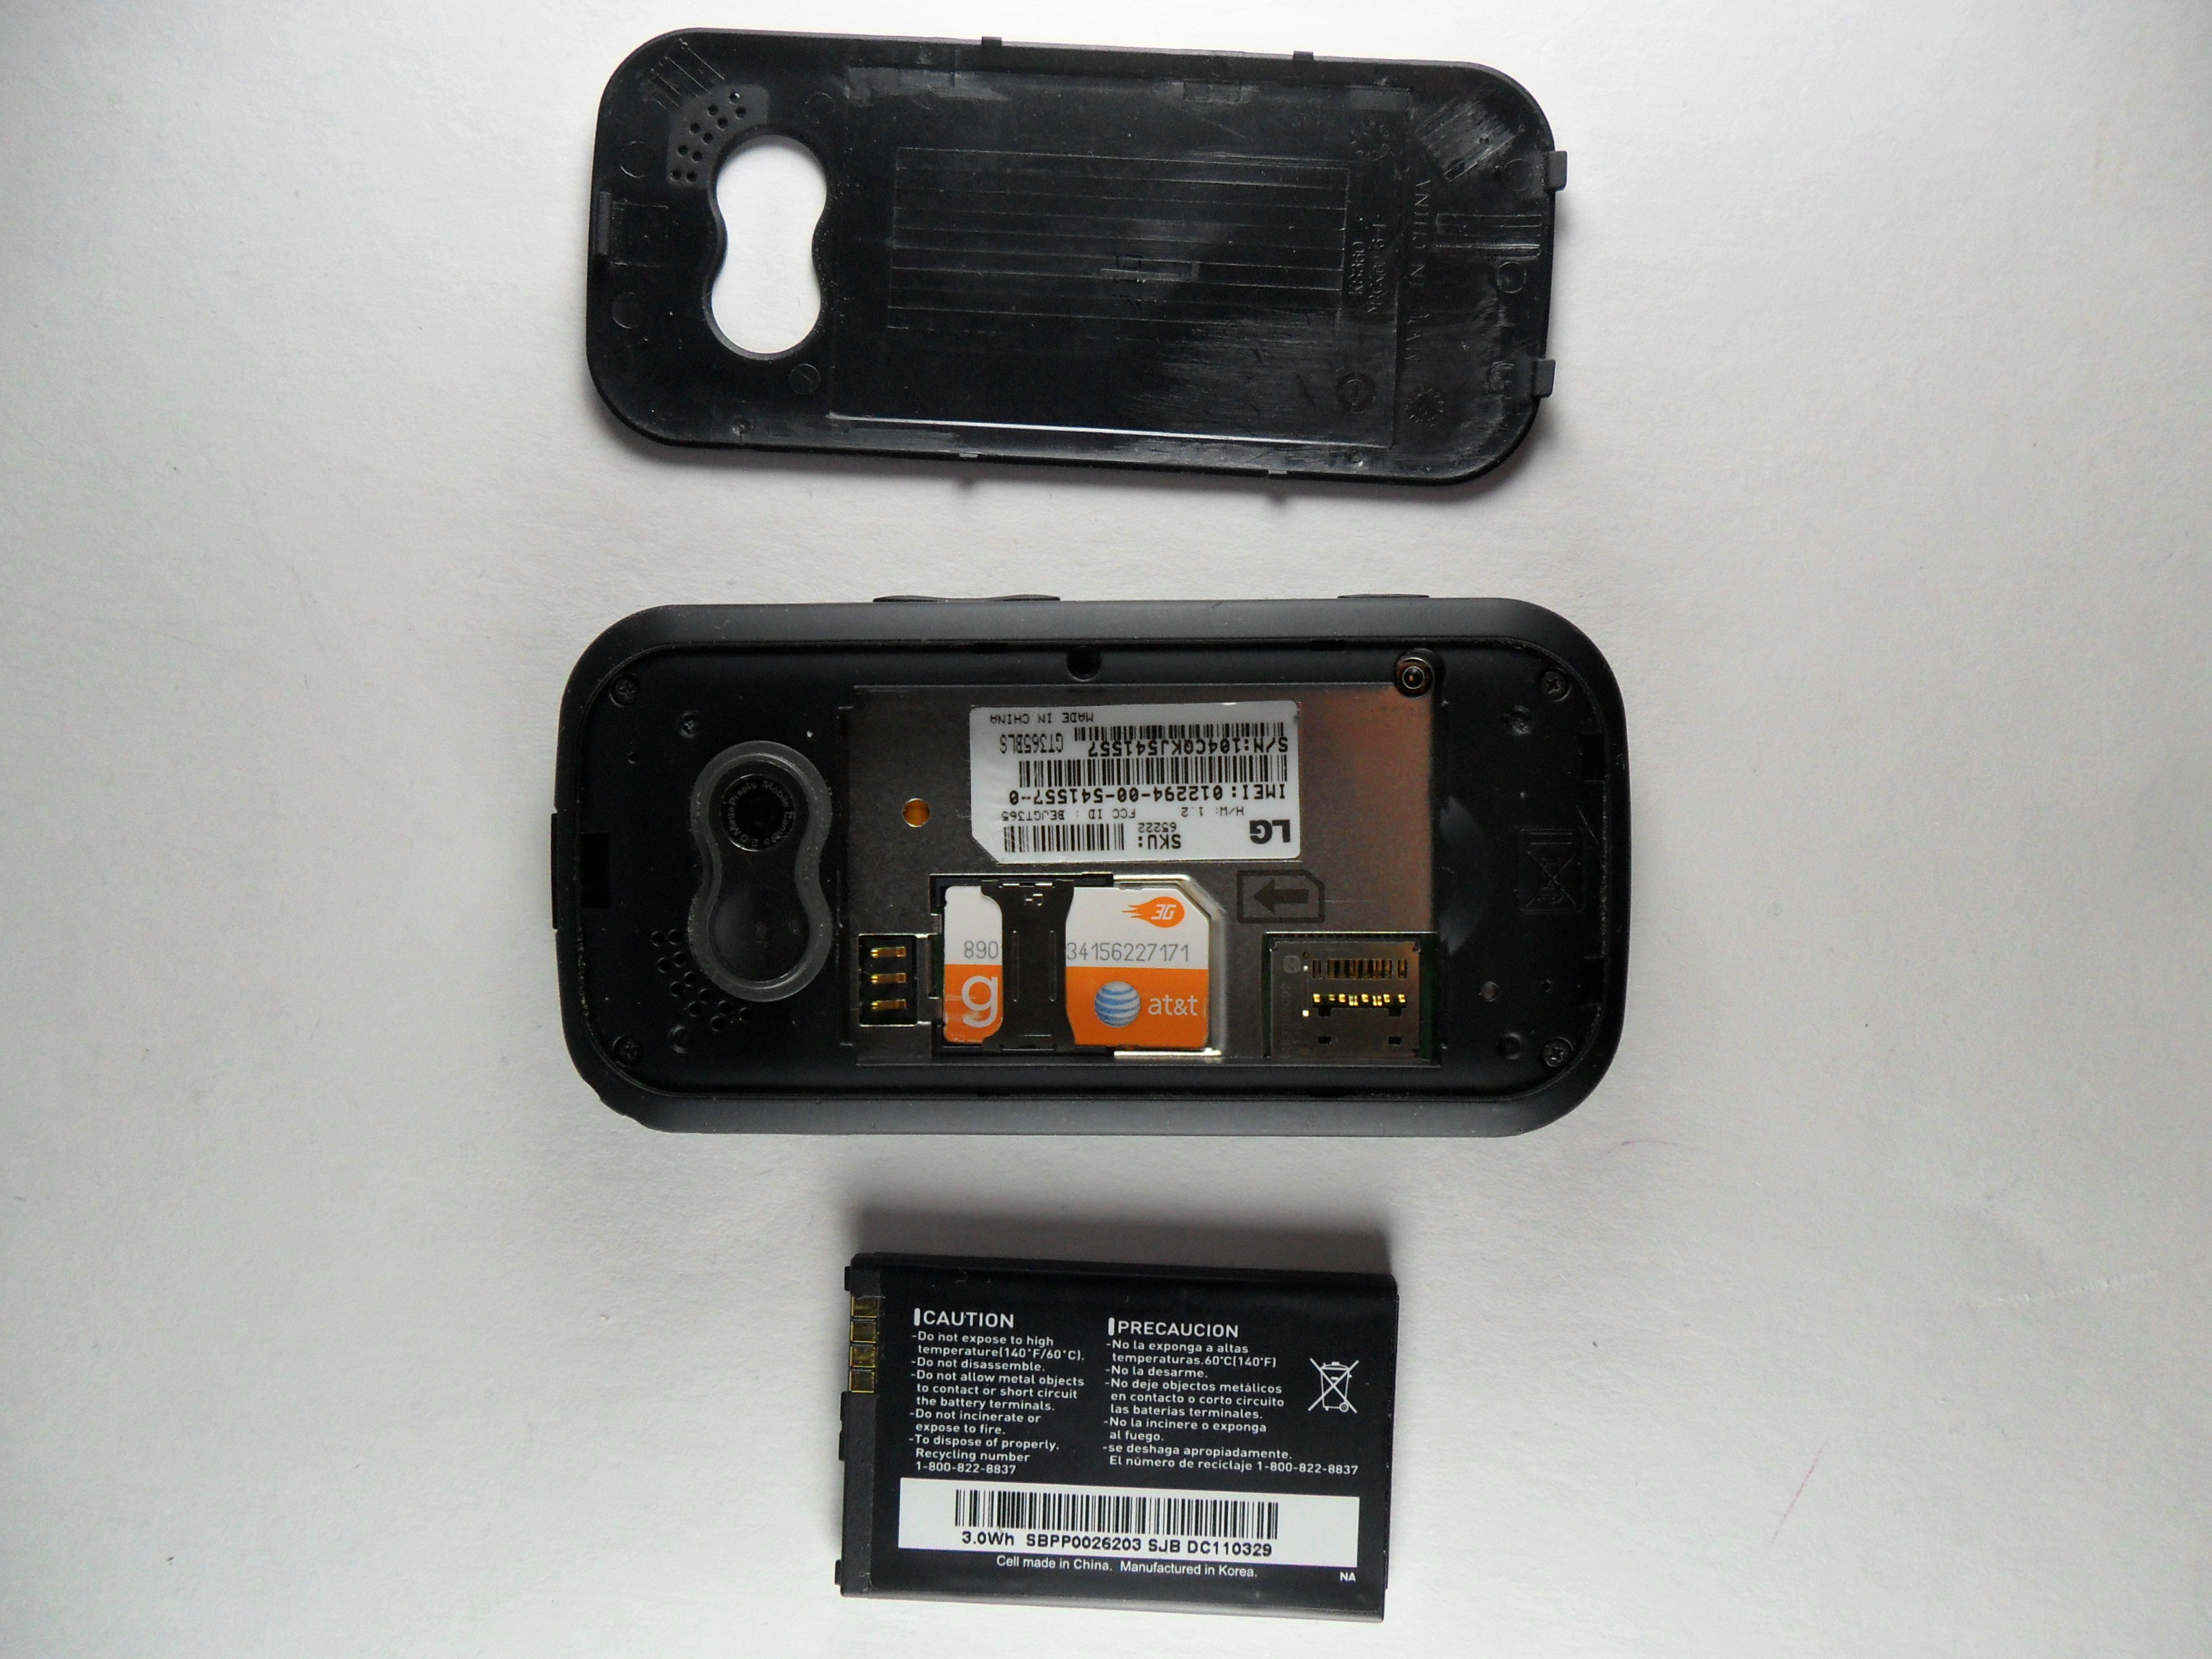 Lg Neon Gt 365 Battery Replacement Ifixit Repair Guide Short Circuit No Disassemble